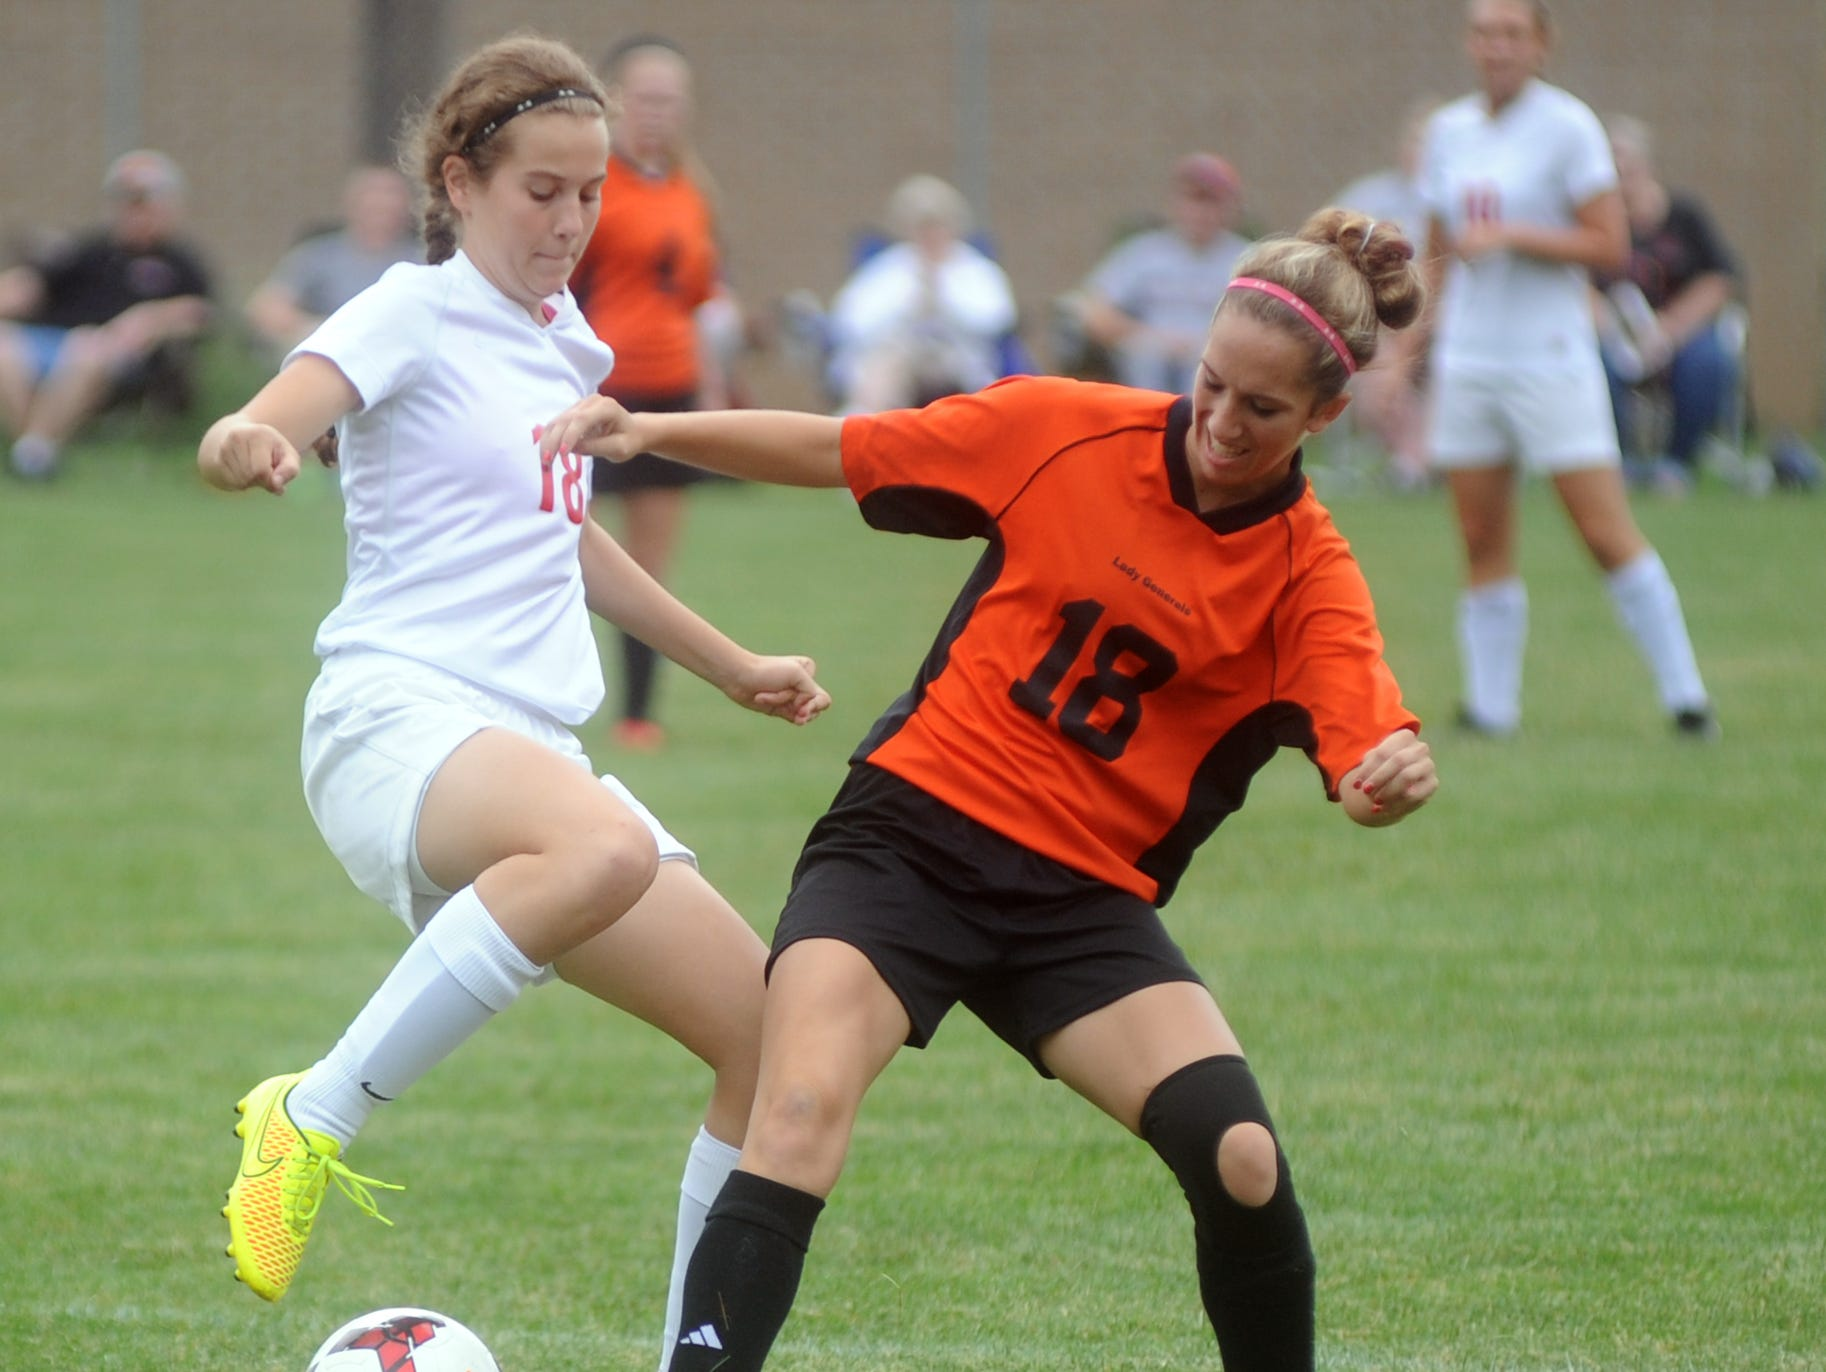 Coshocton's Kenzie Mizer and Ridgewood's Marissa Whitt fight for the ball during Thursday's game.